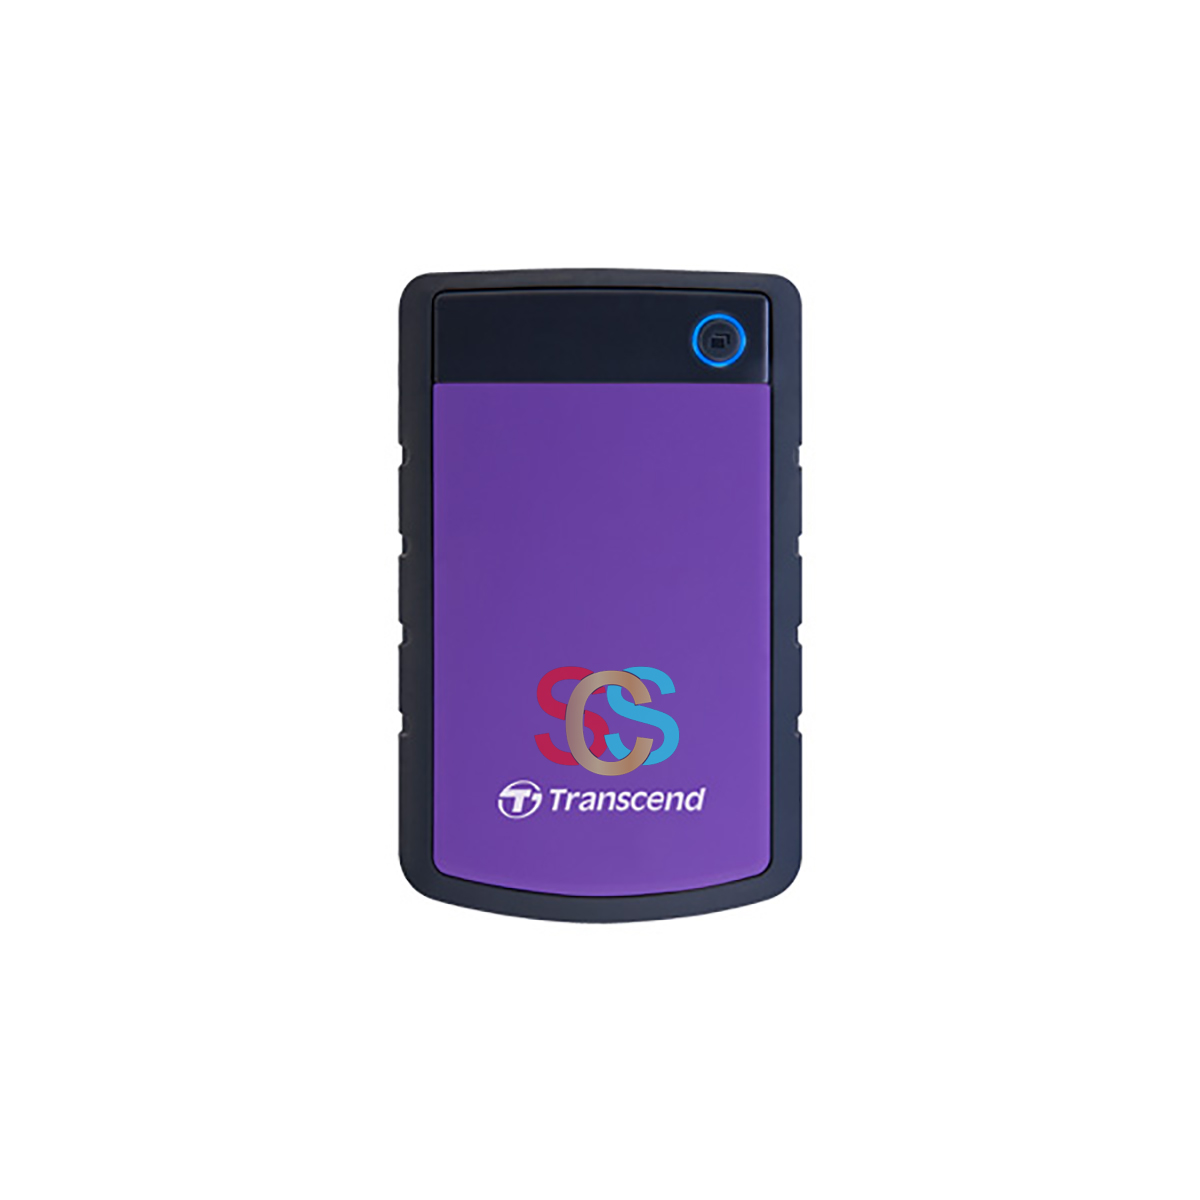 Transcend External HDD :- Get Transcend StoreJet 25H3 2TB USB 3.1 External HDD at the best price in Bangladesh from Samanta Computer. Type – External HDD RPM – 5400RP